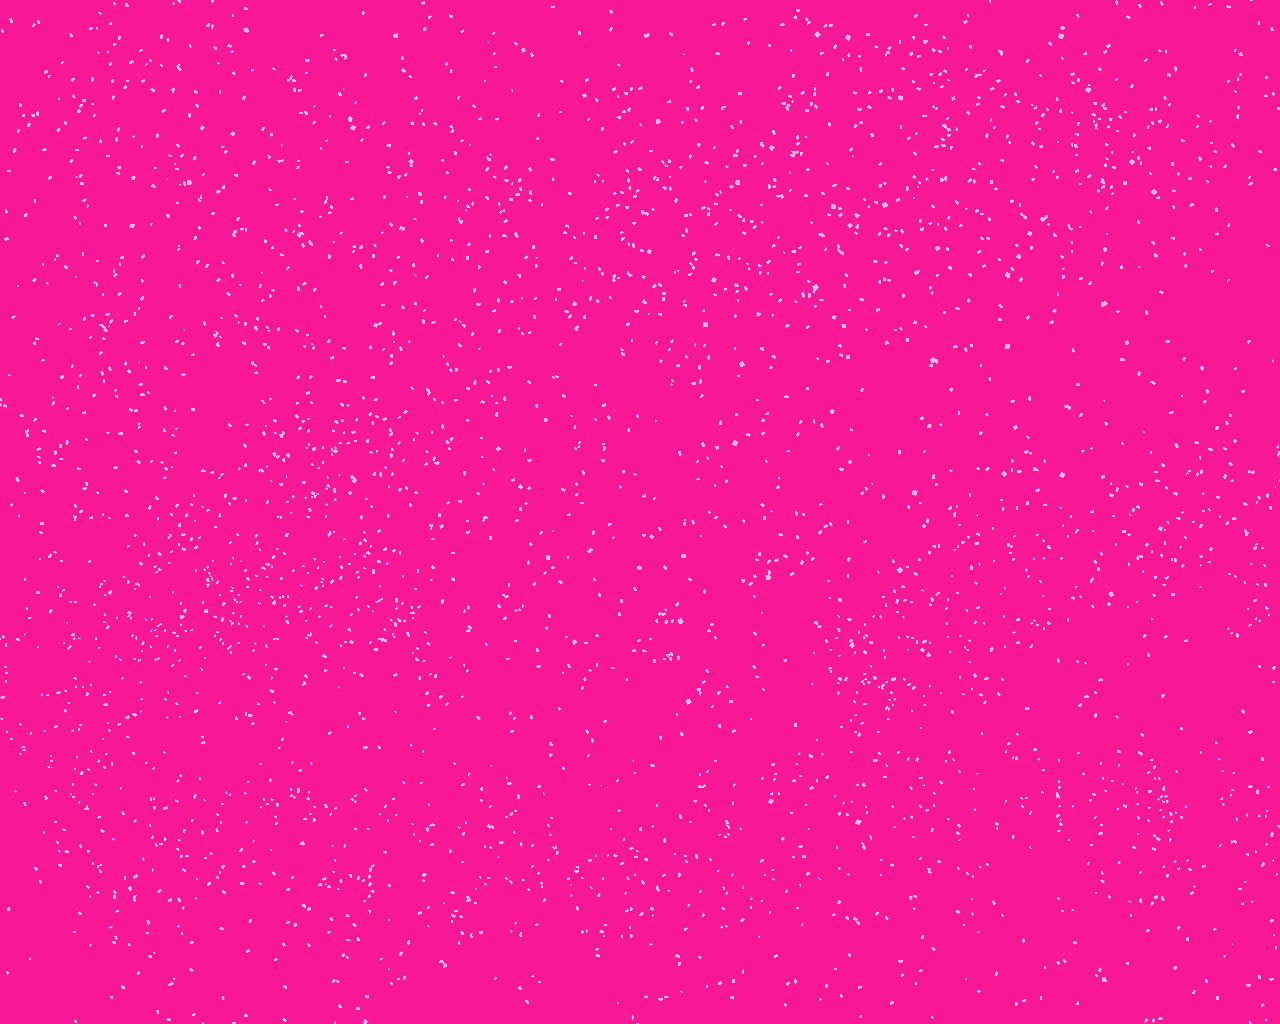 Textured SparkleGlitter Wallpaper  Pink  701356